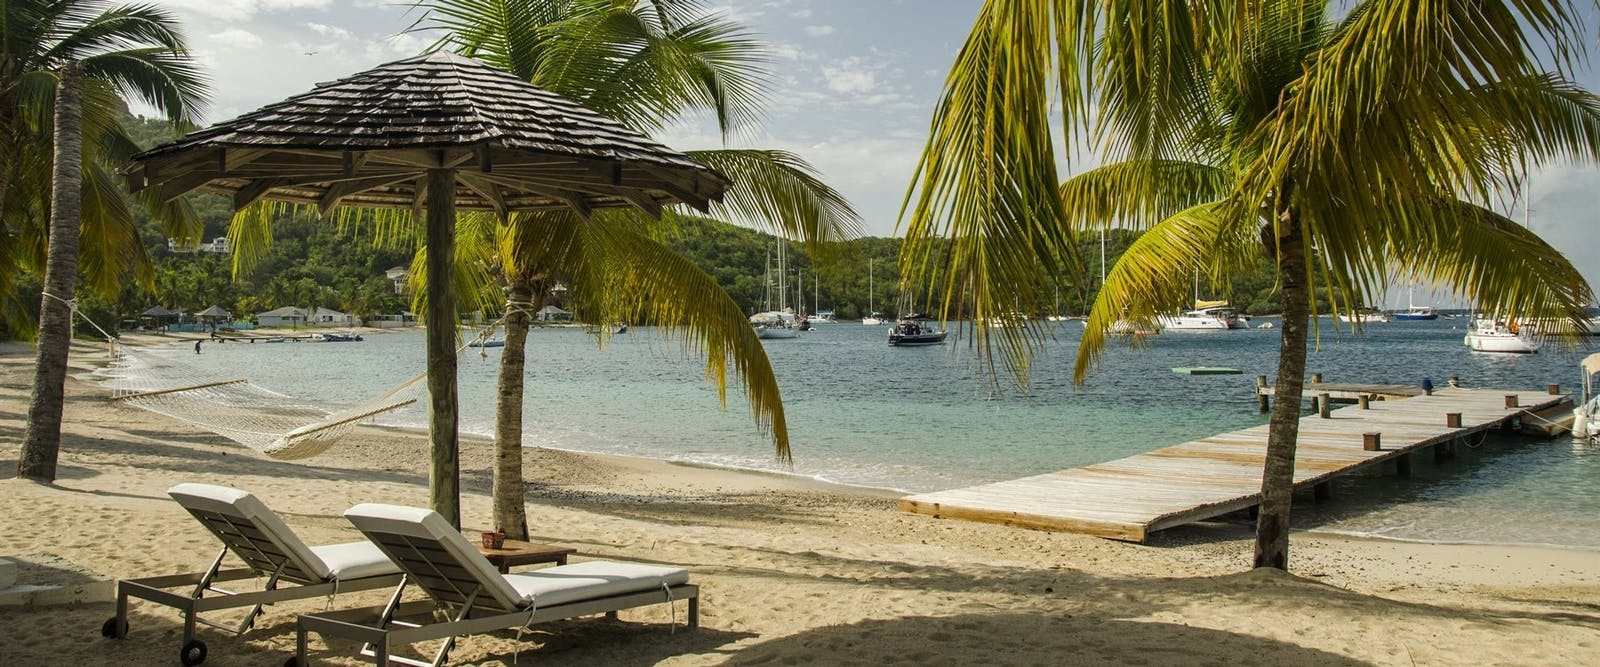 An Idyllic Place to Relax Alongside the Ocean at The Inn at English Harbour, Antigua